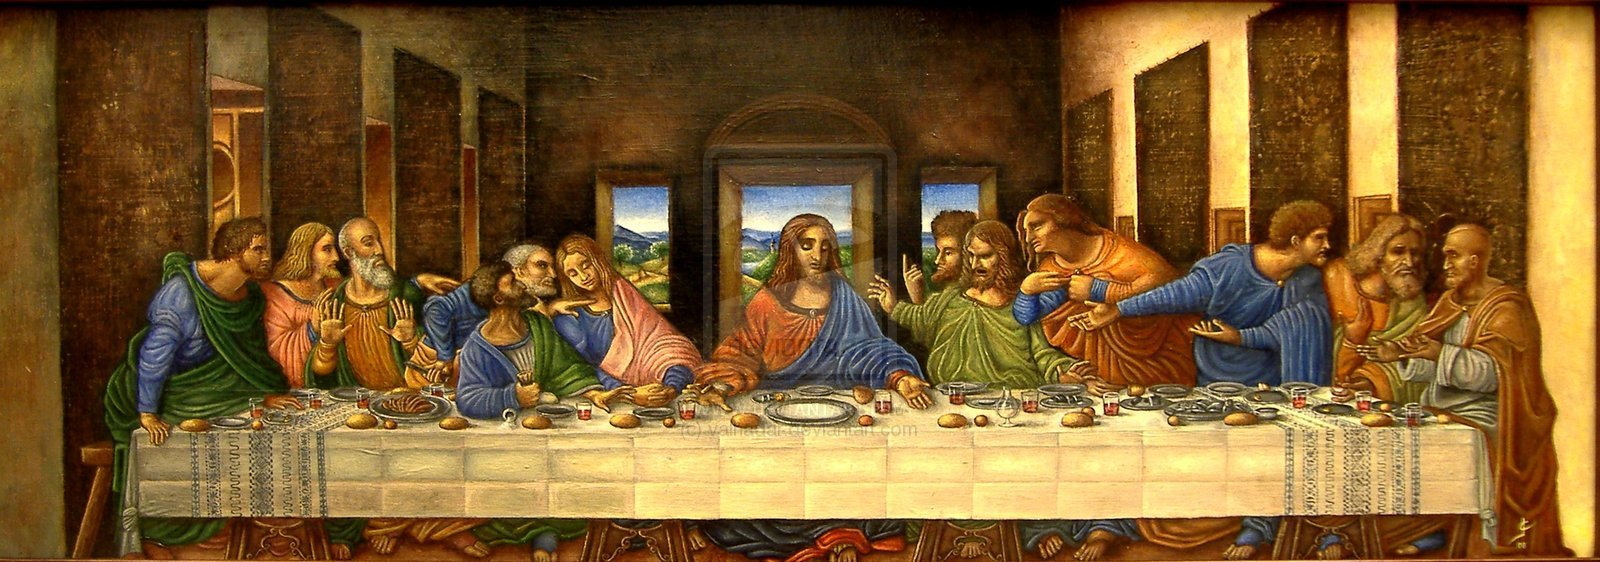 last supper wallpaper 1600x562